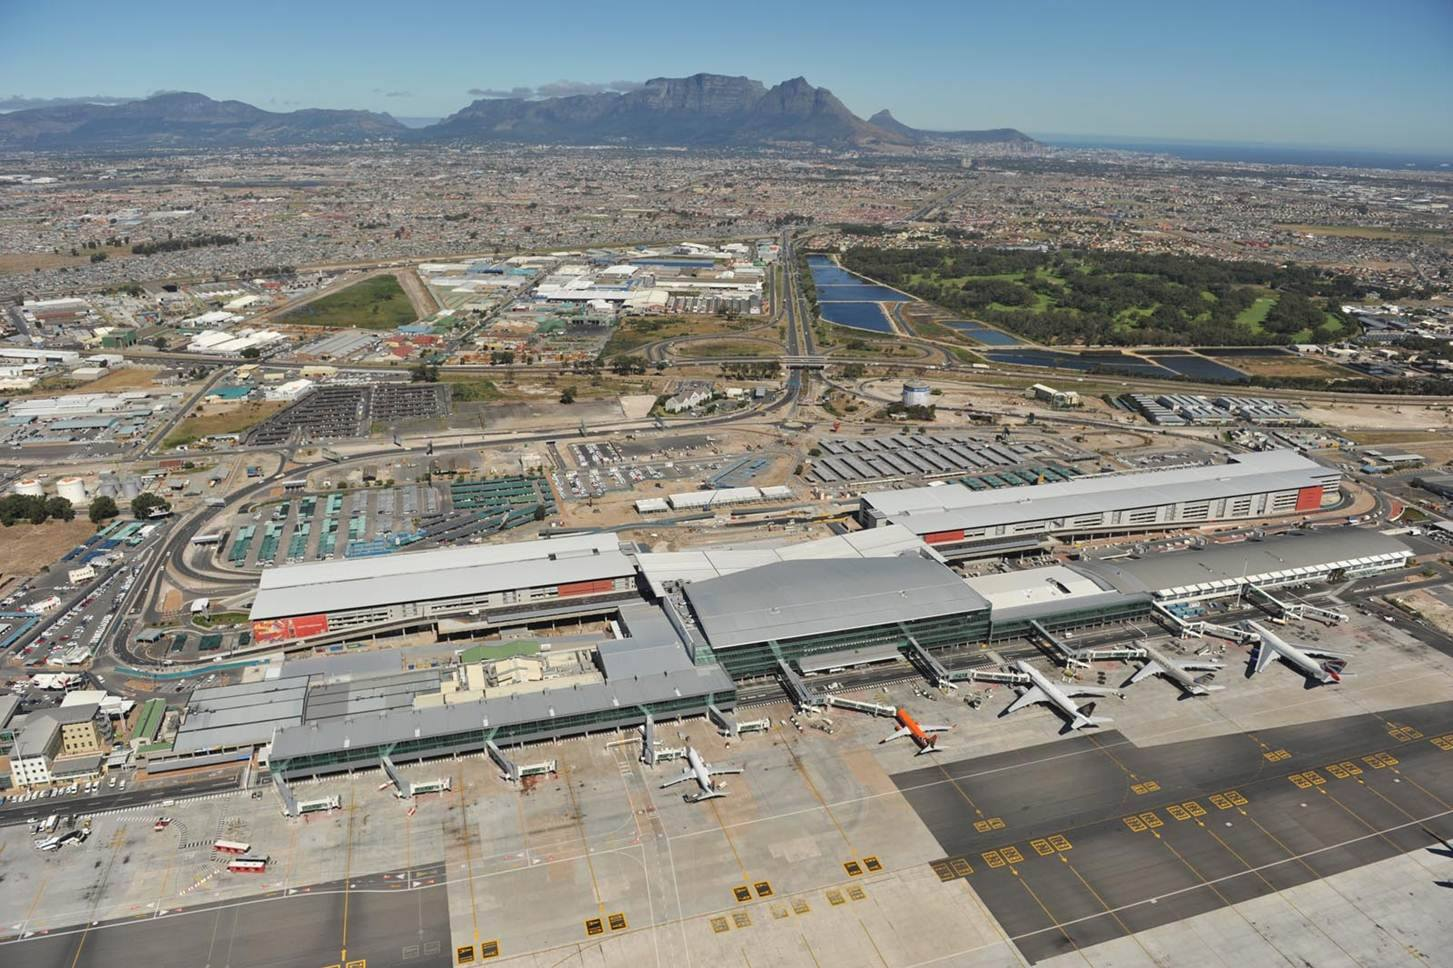 ภาพจาก Facebook Cape Town Airport